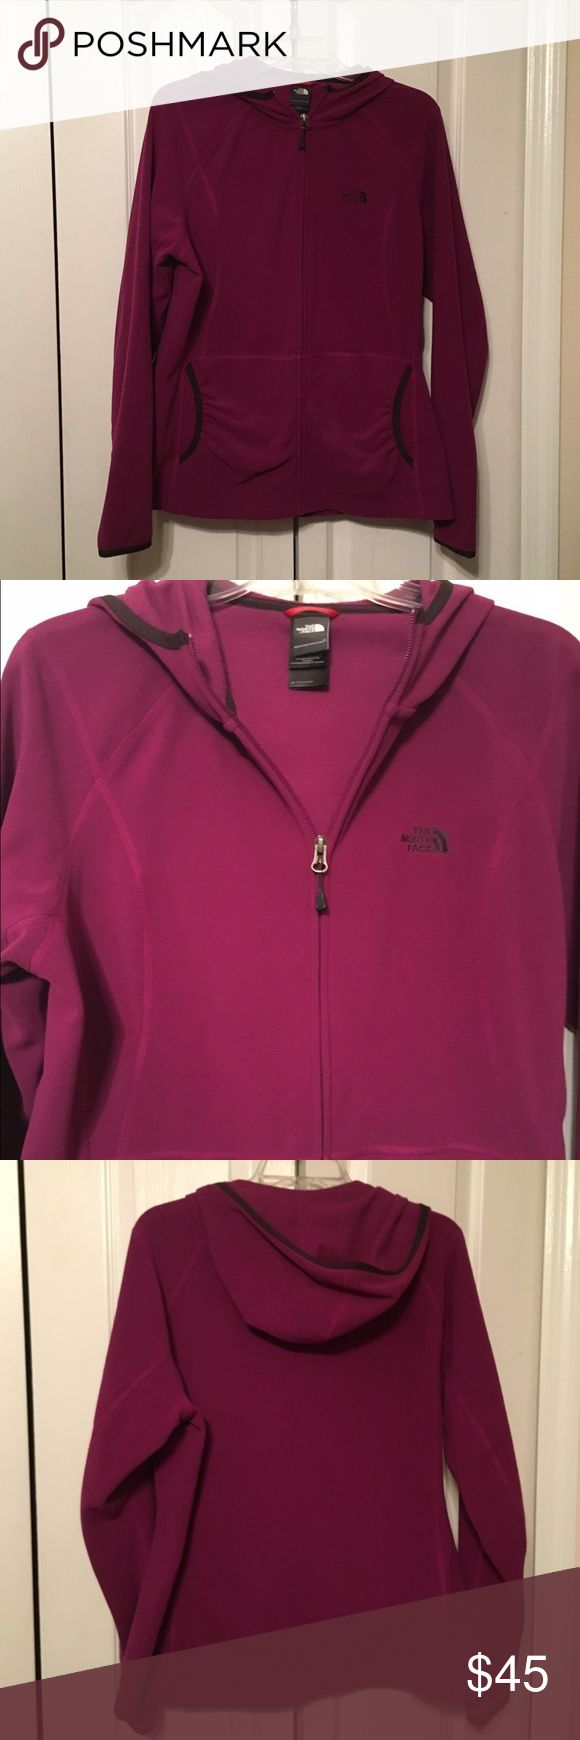 North Face Ladies Jacket with Hood Size XL Worn Once Ladies North Face Jacket North Face Jackets & Coats